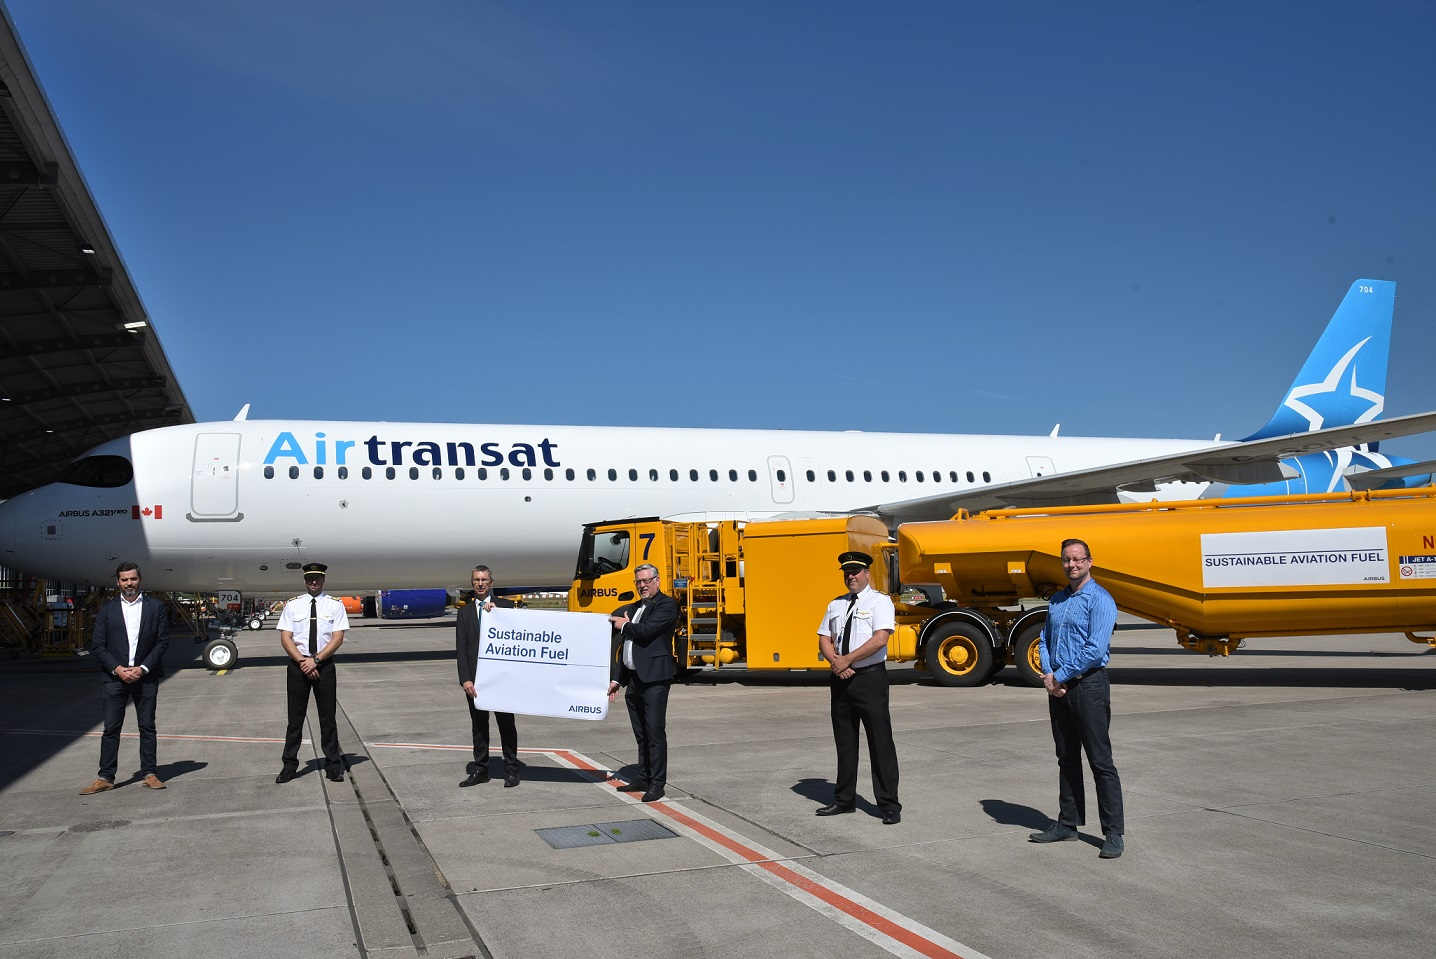 Airbus starts Hamburg deliveries with sustainable aviation fuel